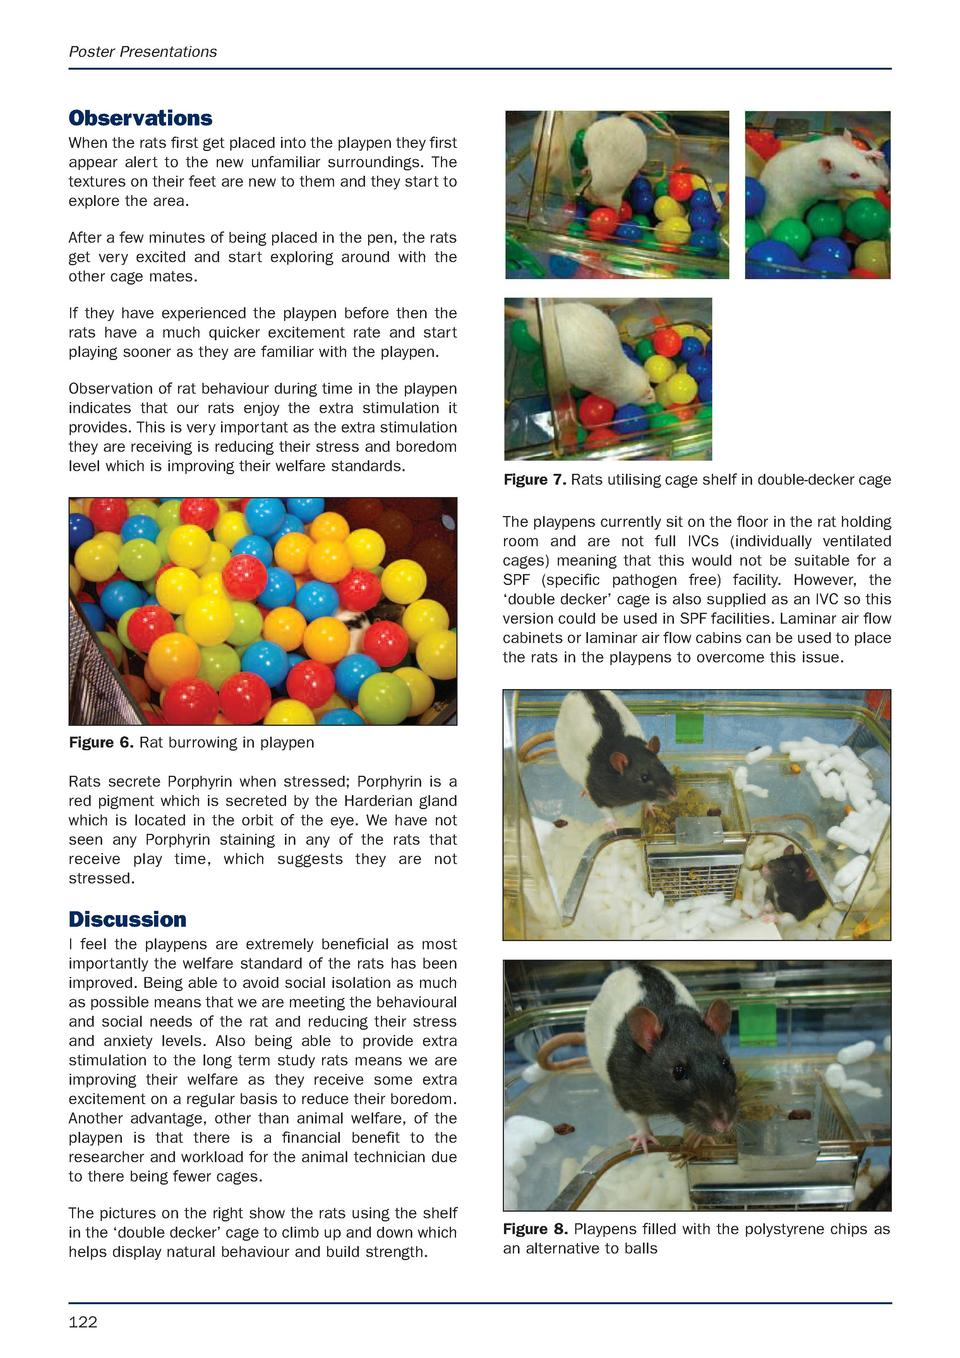 Poster Presentations  Observations When the rats first get placed into the playpen they first appear alert to the new unfa...